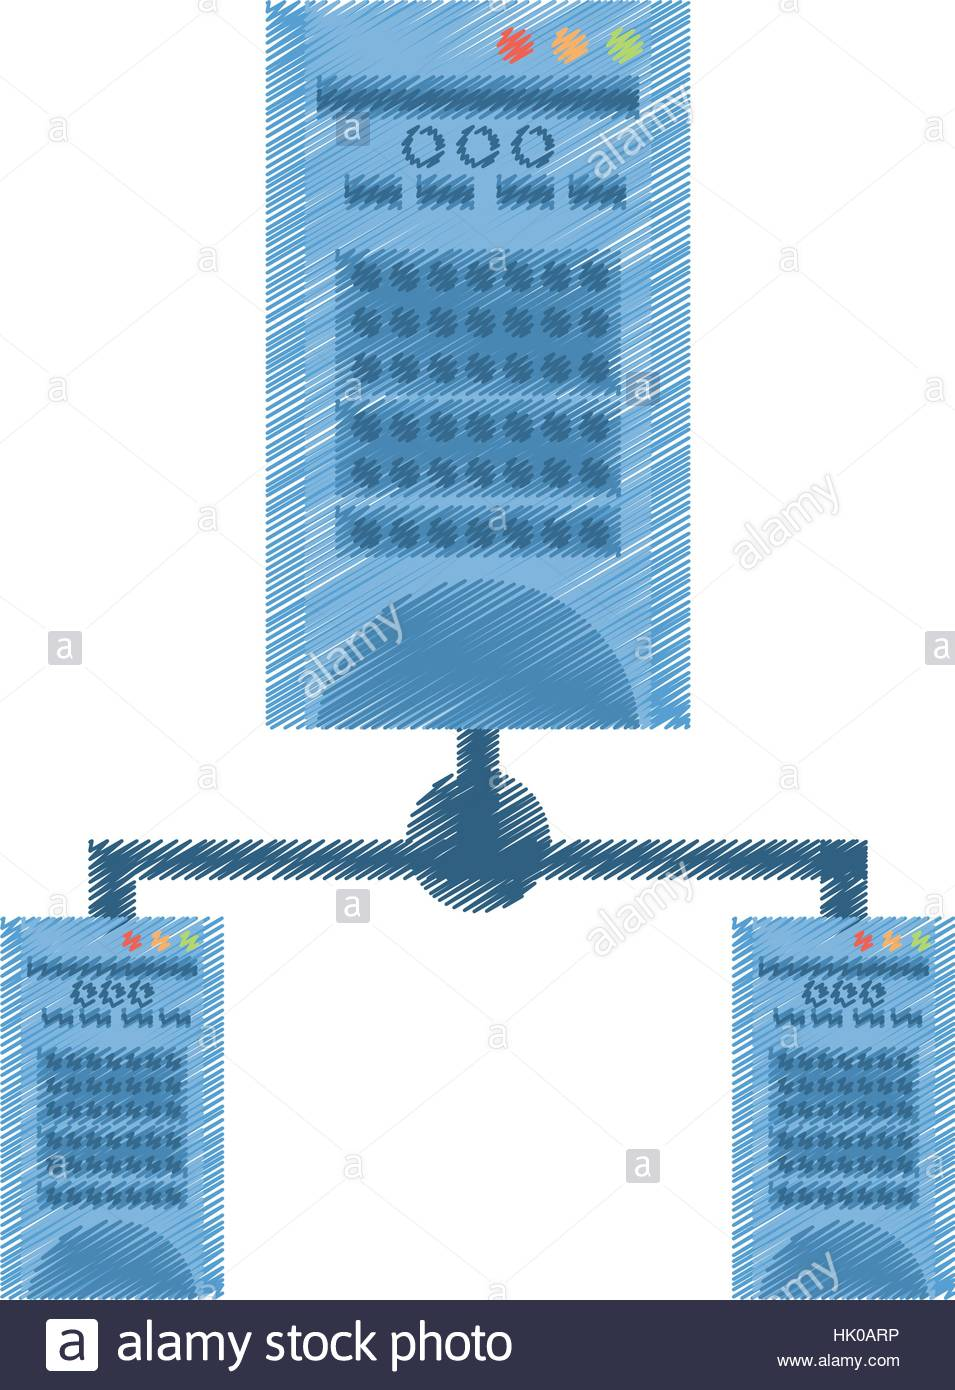 955x1390 Drawing Tower Computer Hardware Technology Vector Illustration Eps